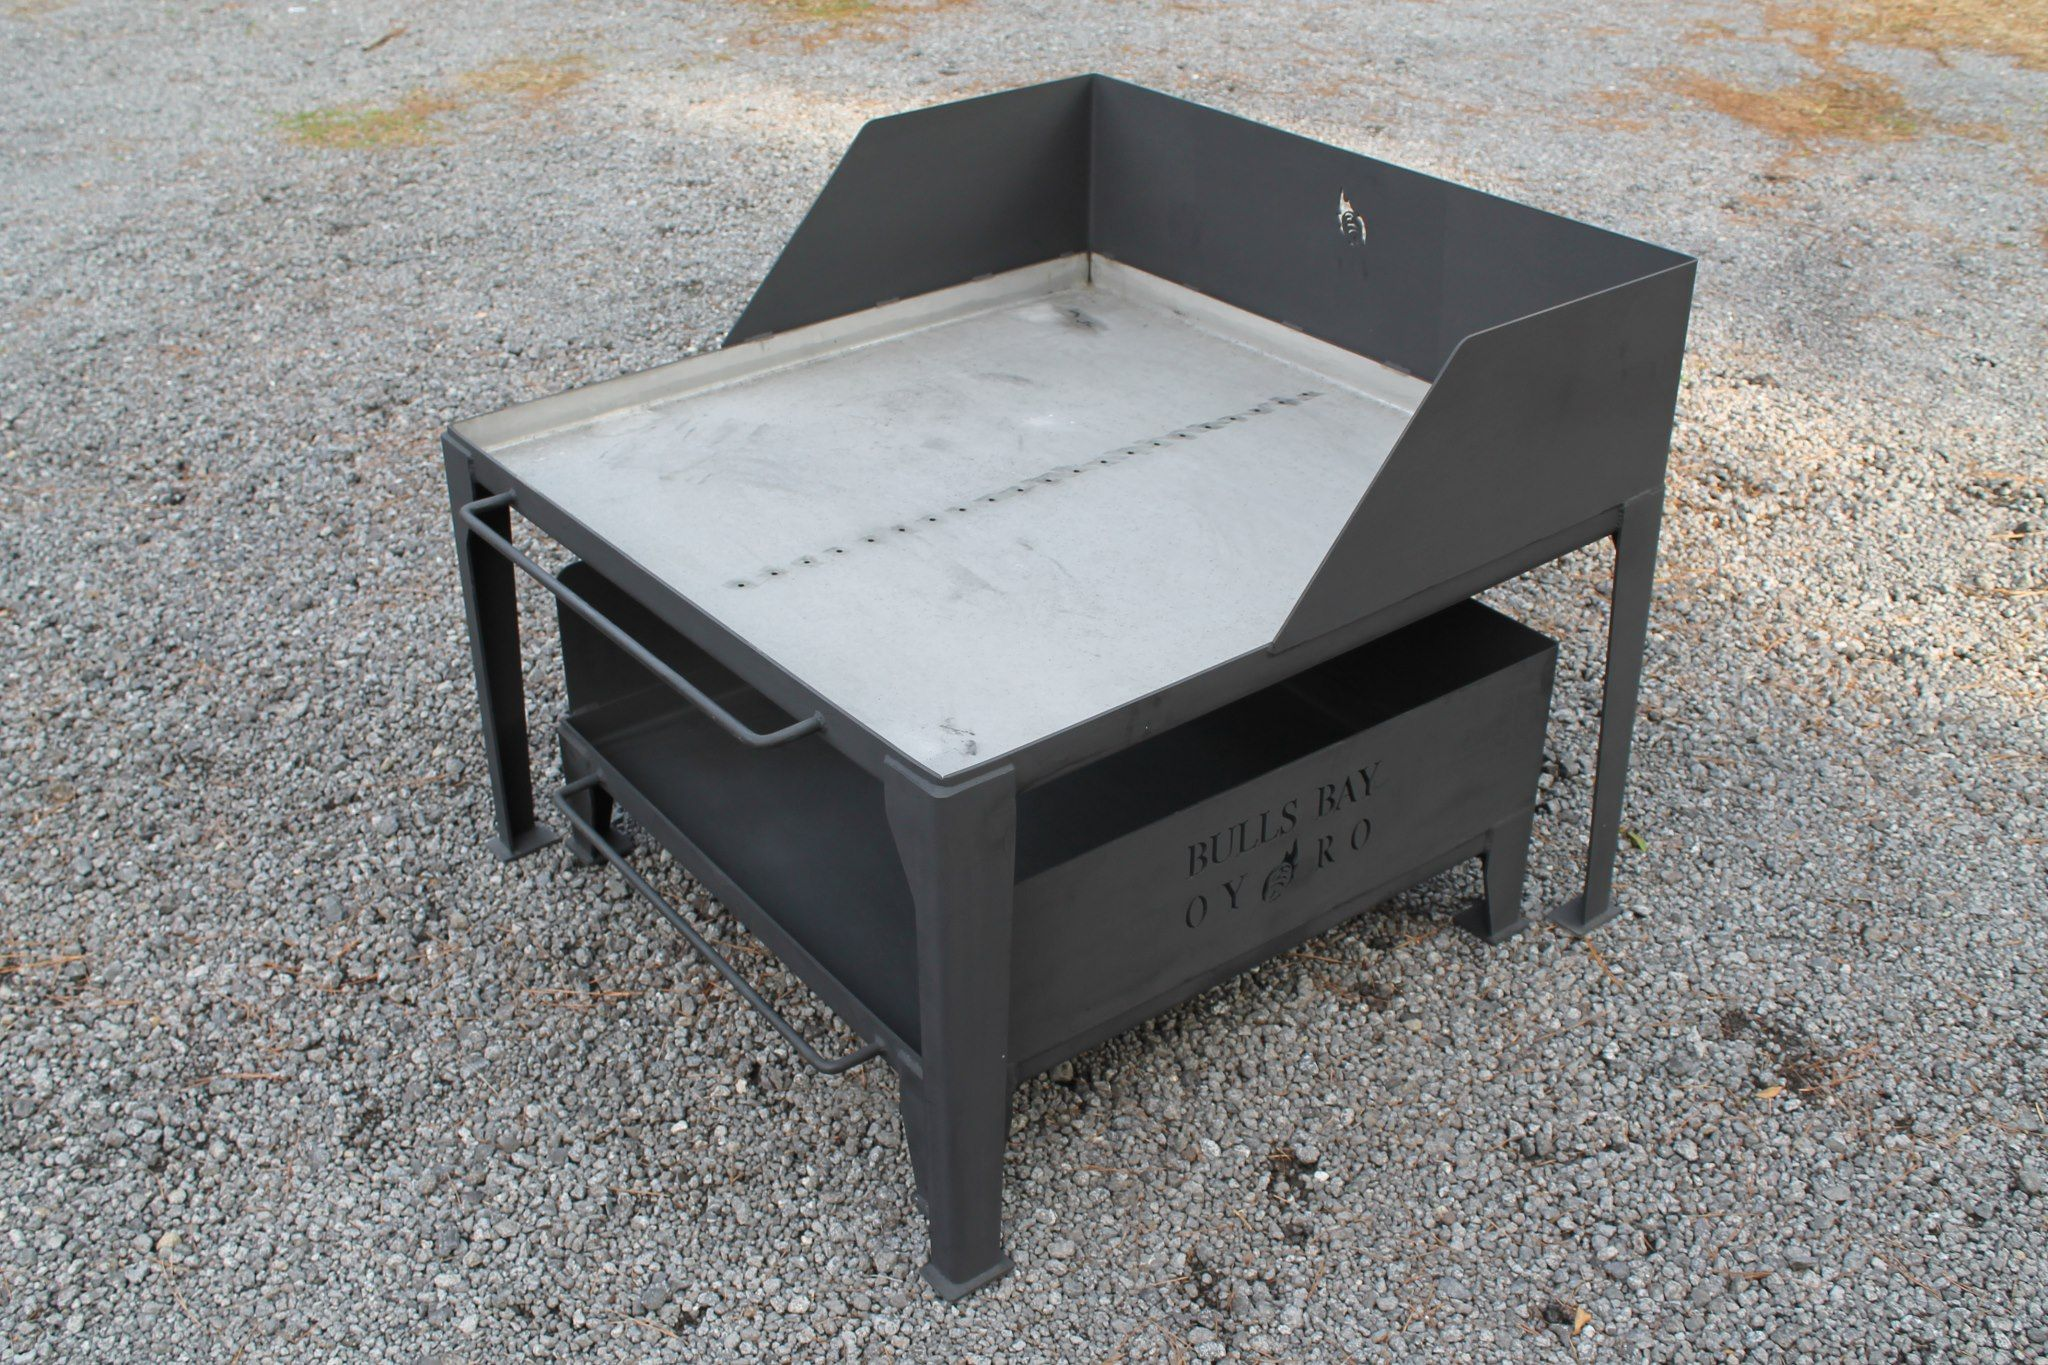 oyster cooker by bulls bay oyster roasts with fire pit designed by